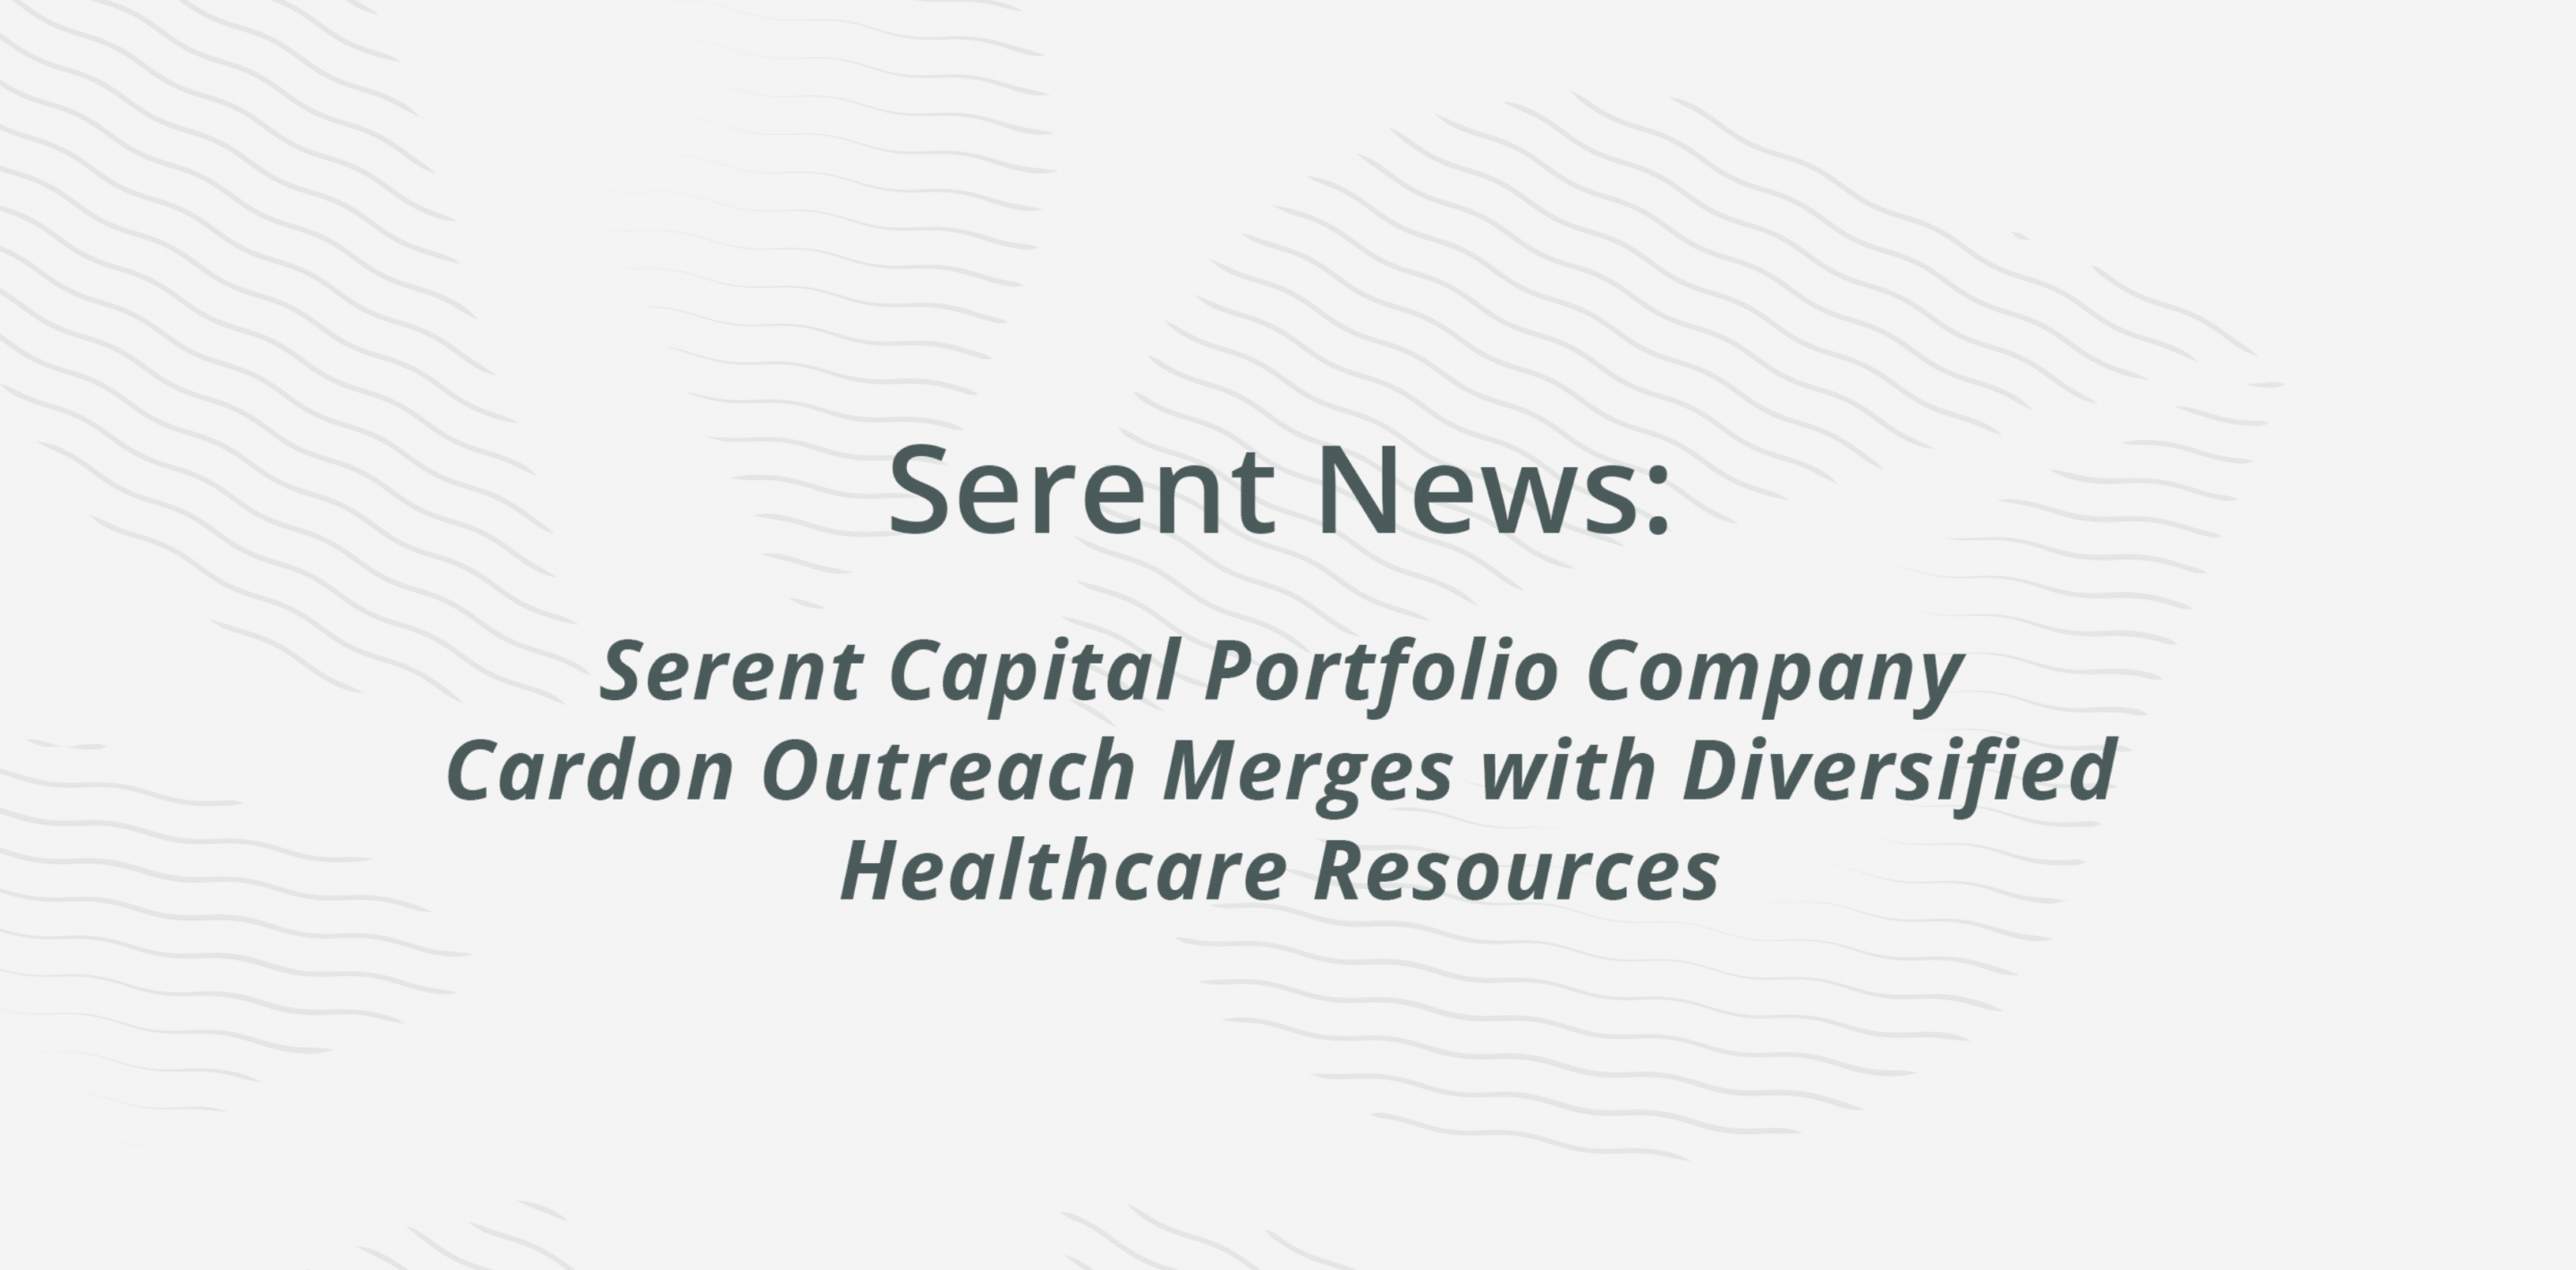 Serent Capital Portfolio Company Cardon Outreach Merges with Diversified Healthcare Resources